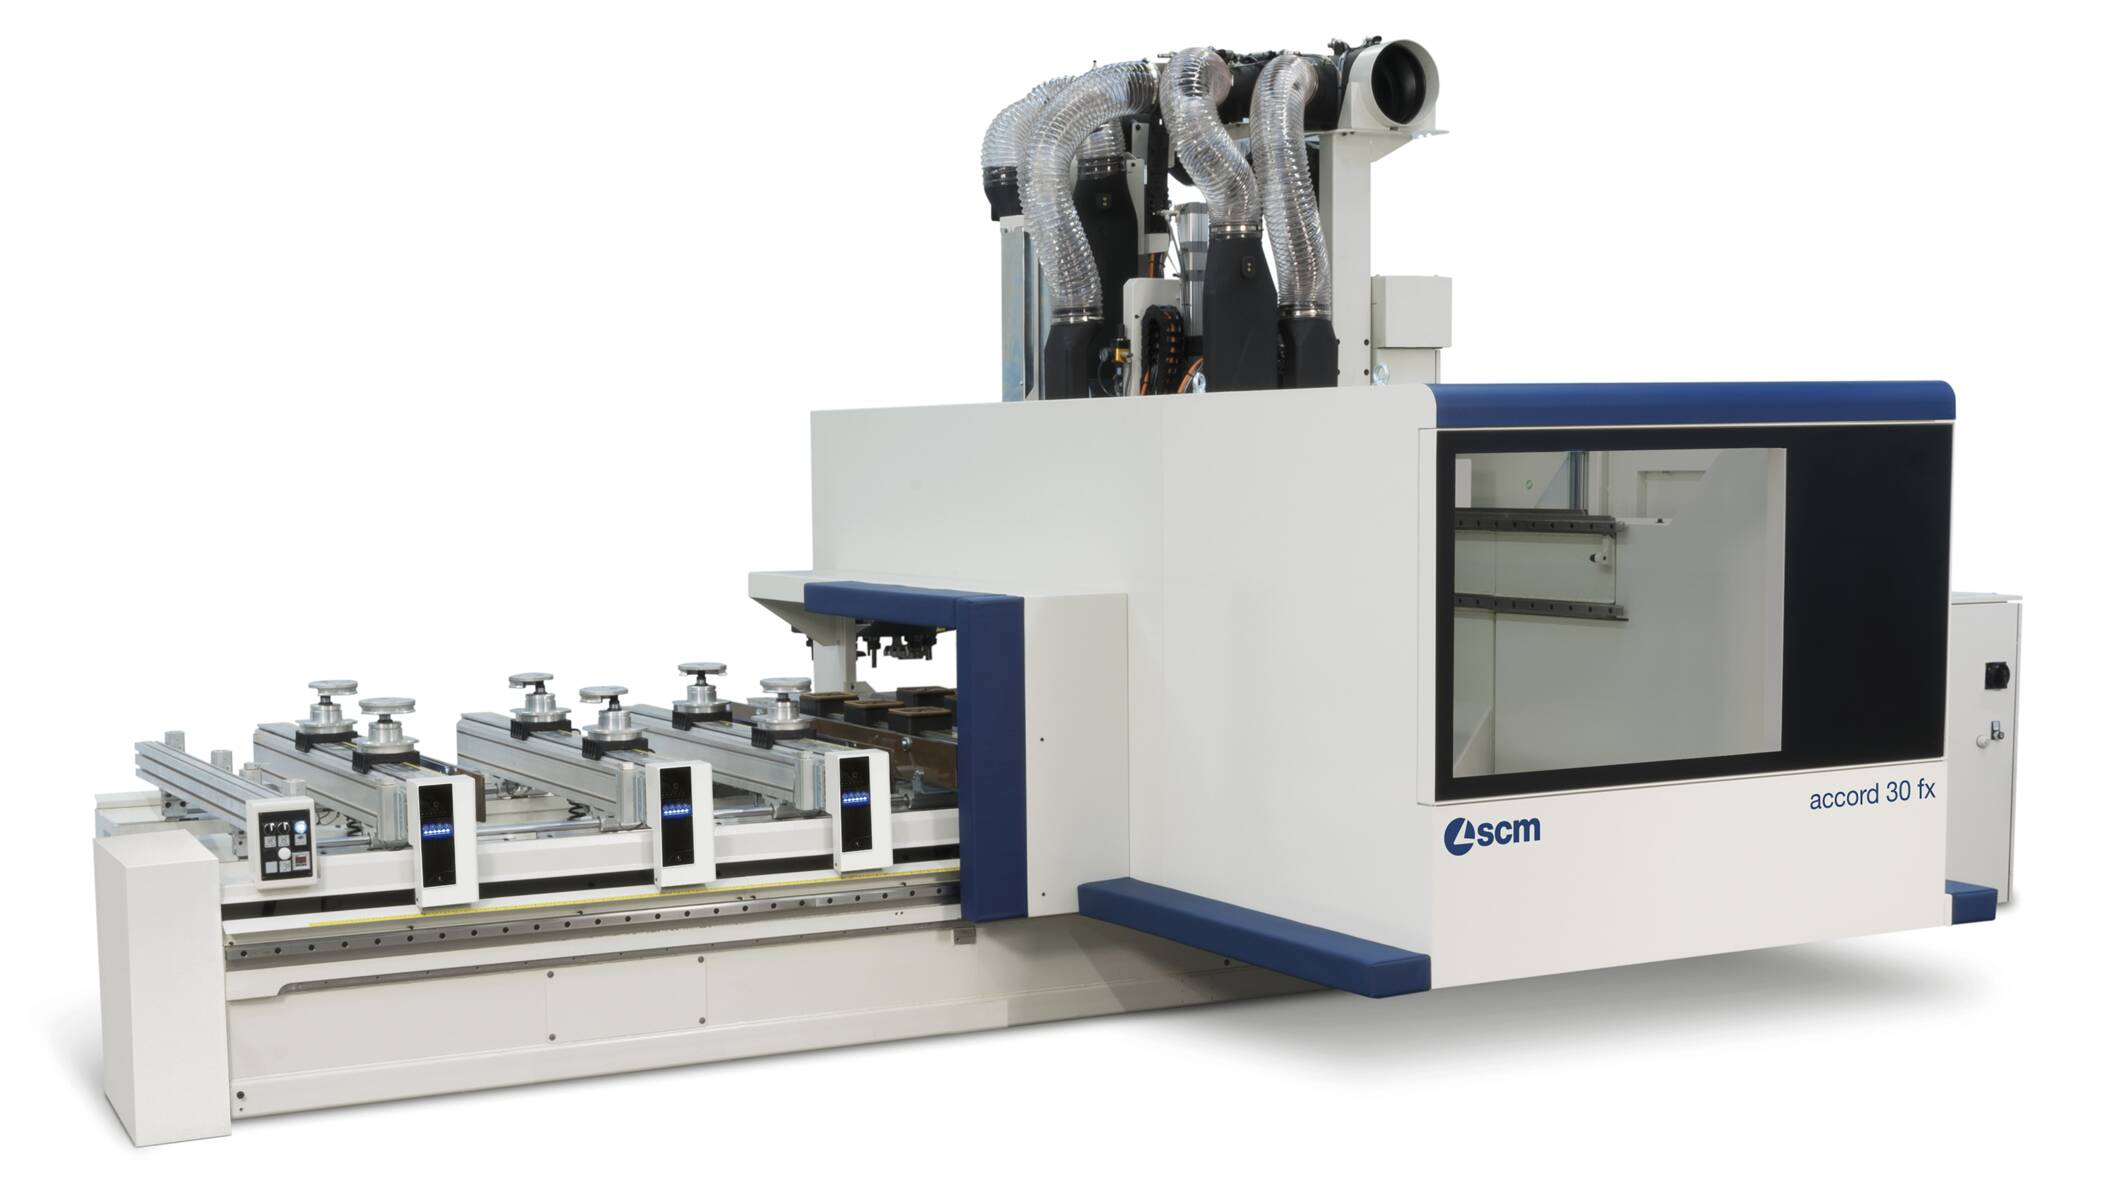 CNC Machining Centres - CNC Machining Centres for solid wood routing and drilling - accord 30 fx